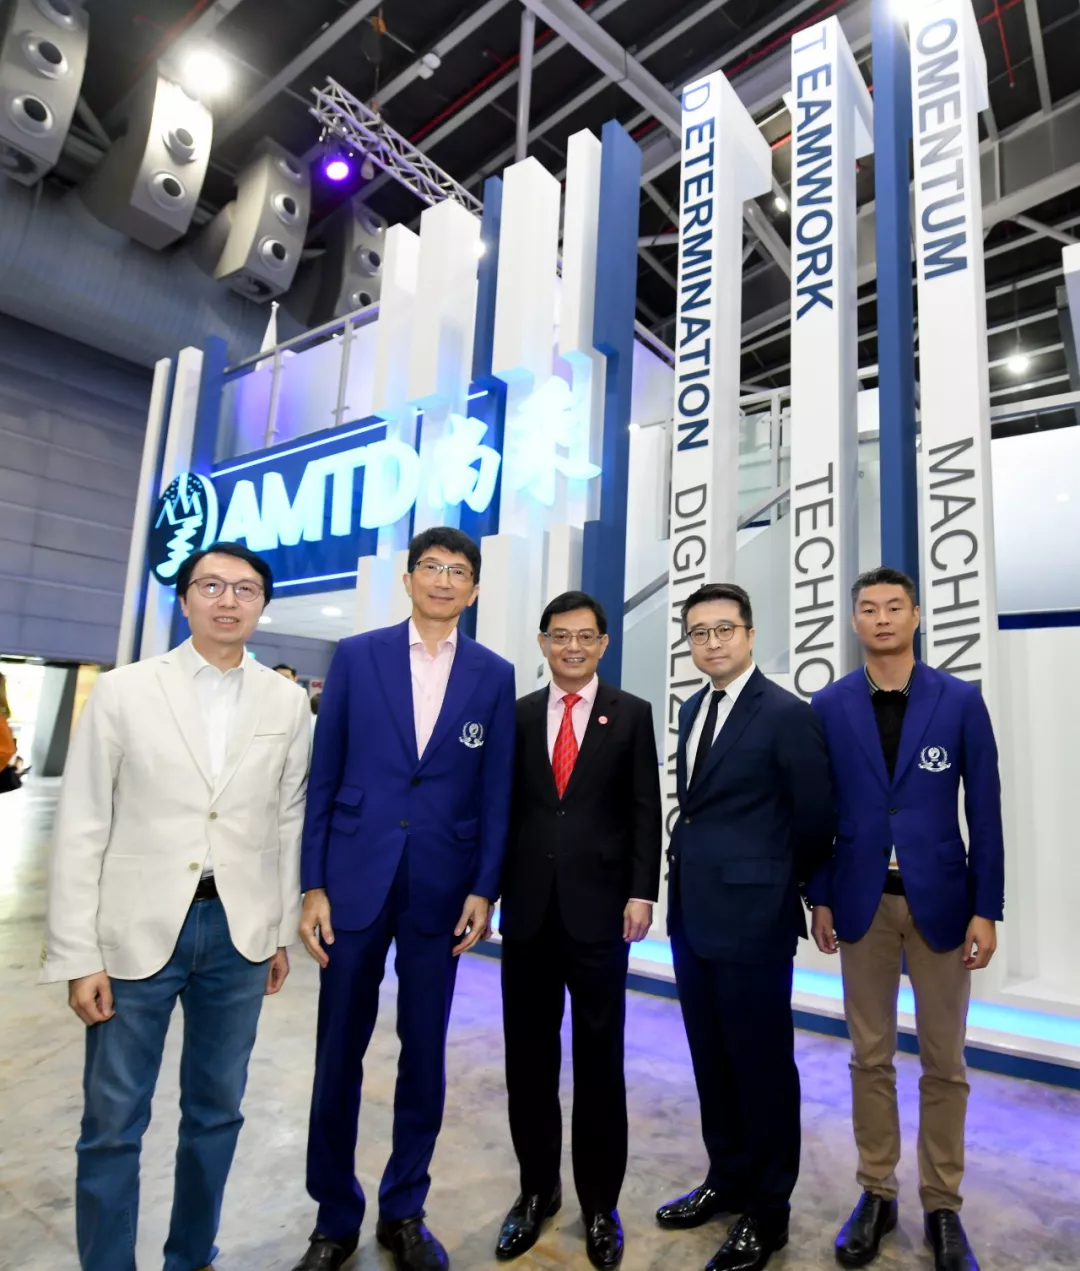 #AMTD x SFF Vol.4 | Heng Swee Keat, Deputy Prime Minister and Minister for Finance of Singapore, Vivian Balakrishnan, Minister for Foreign Affairs of Singapore and Ravi Menon, Managing Director of MAS met Calvin Choi